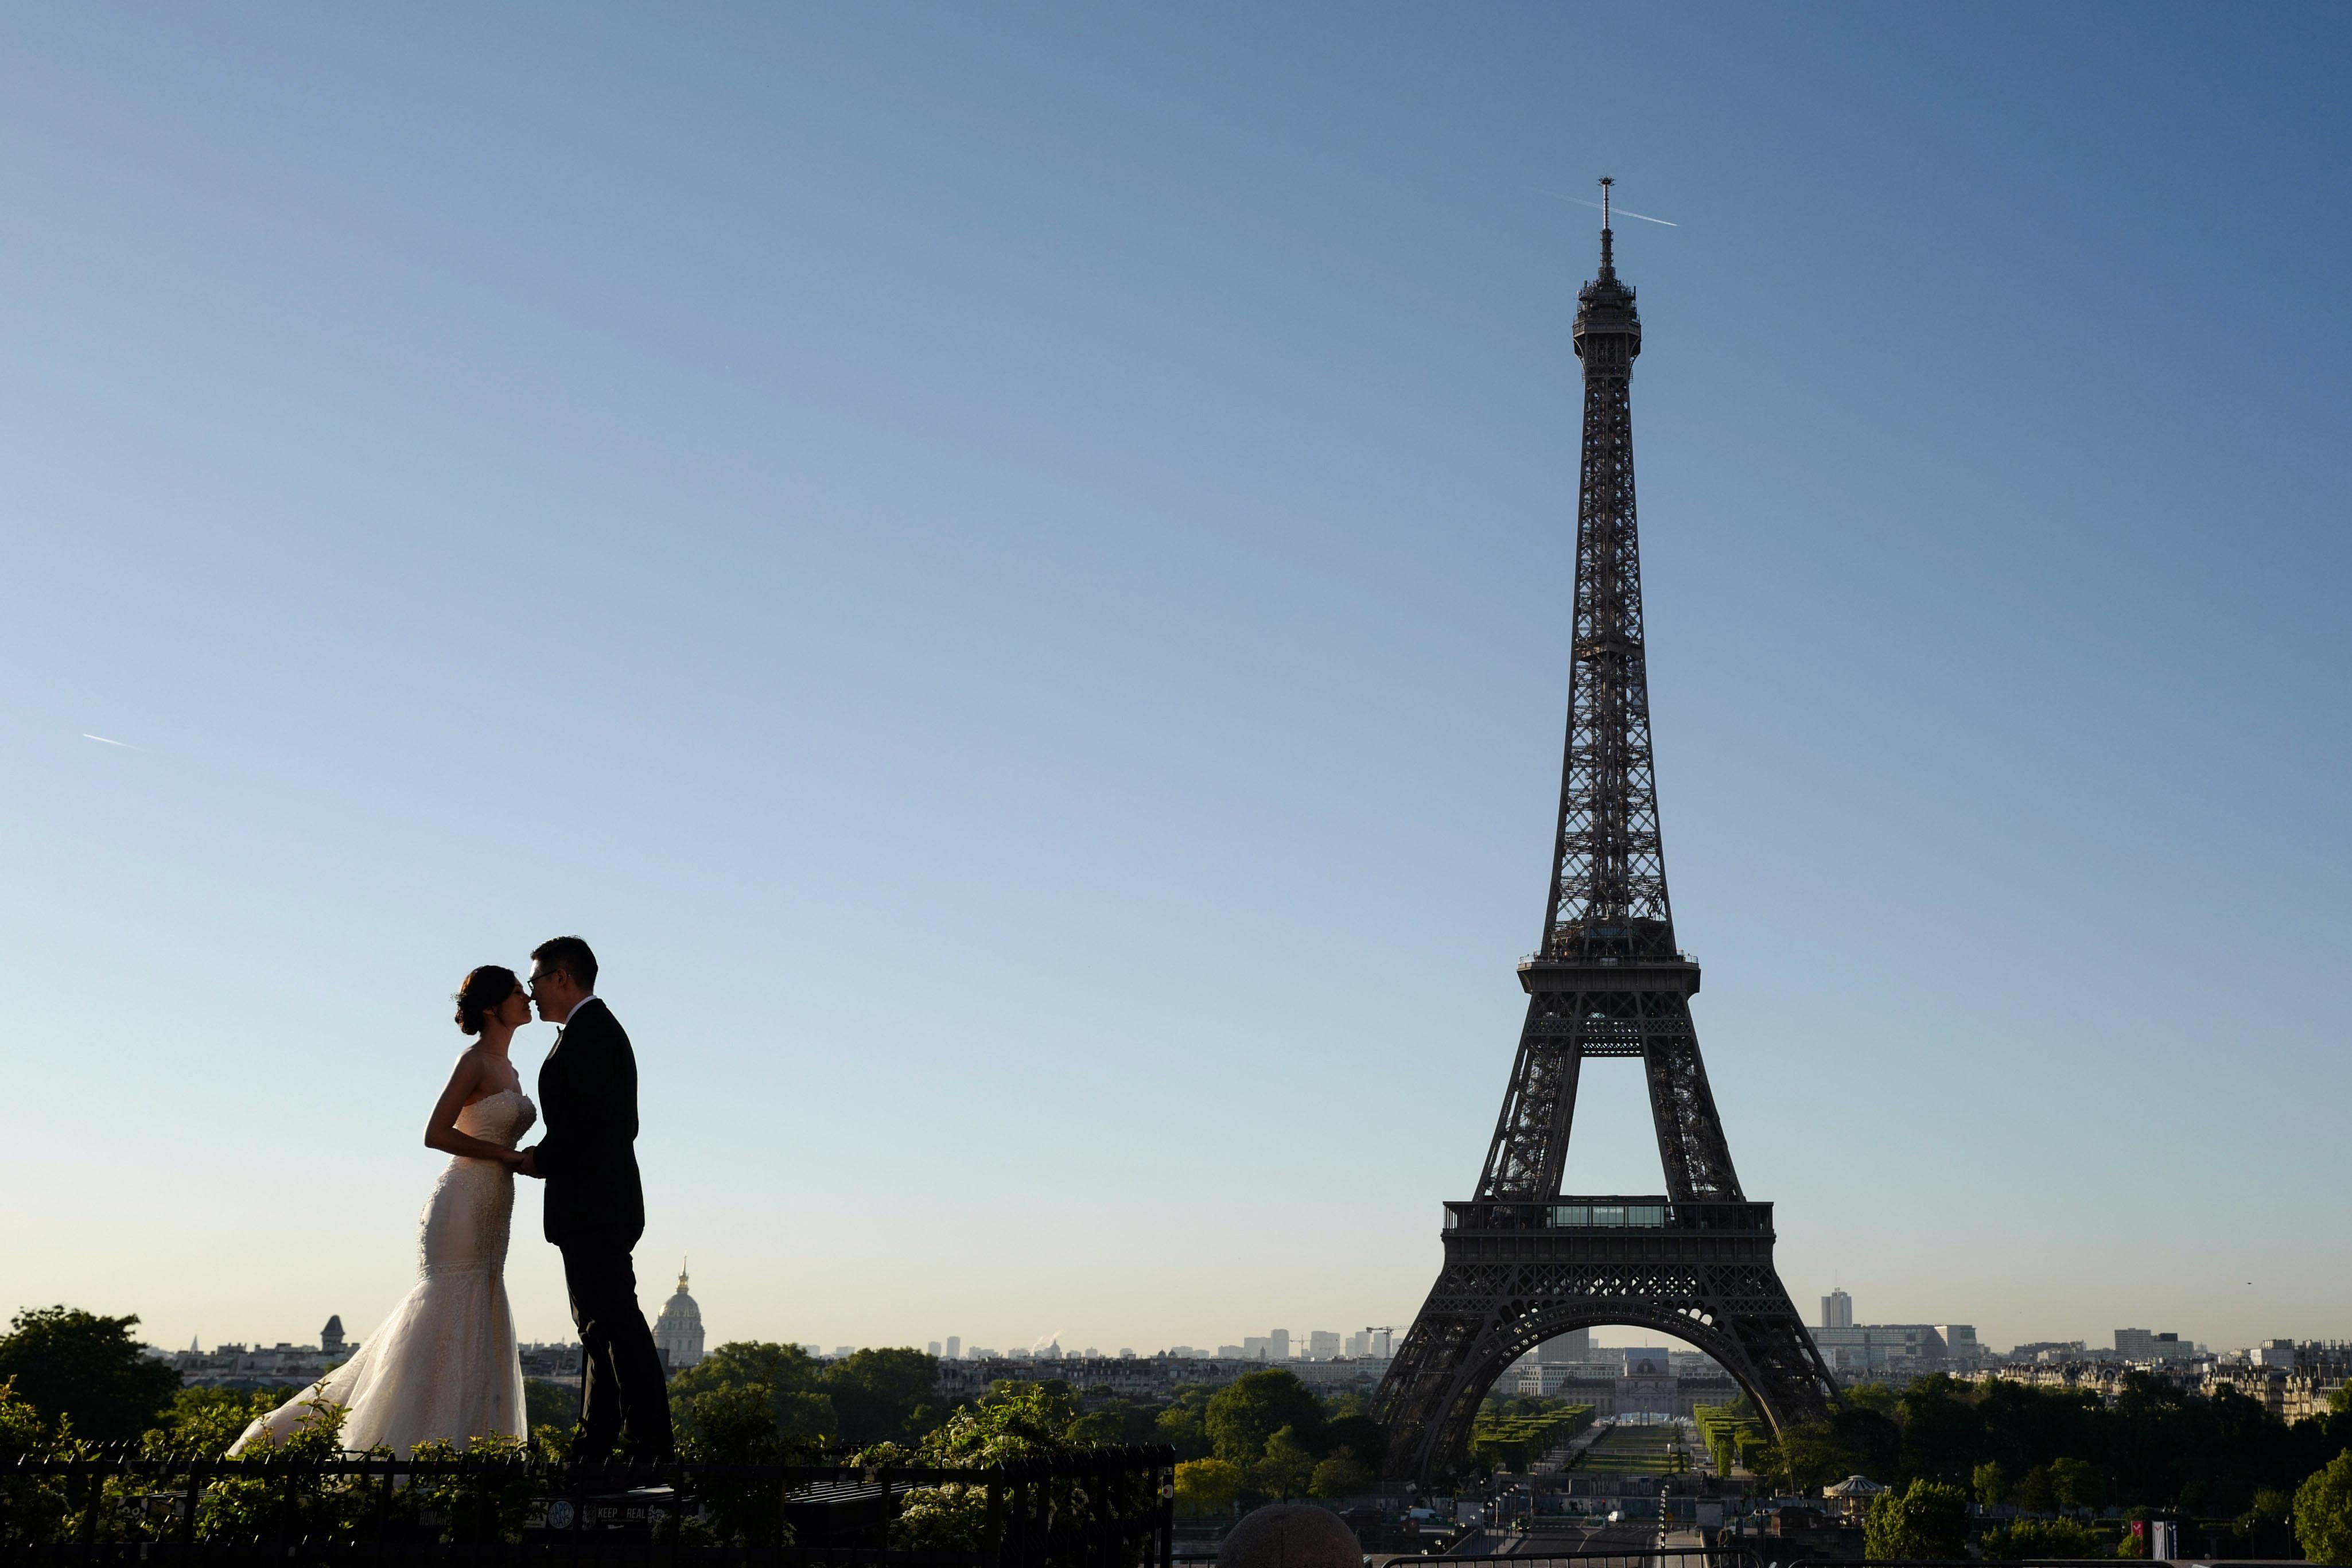 A married couple poses in front of the Eiffel tower at sunrise on Trocadero square.